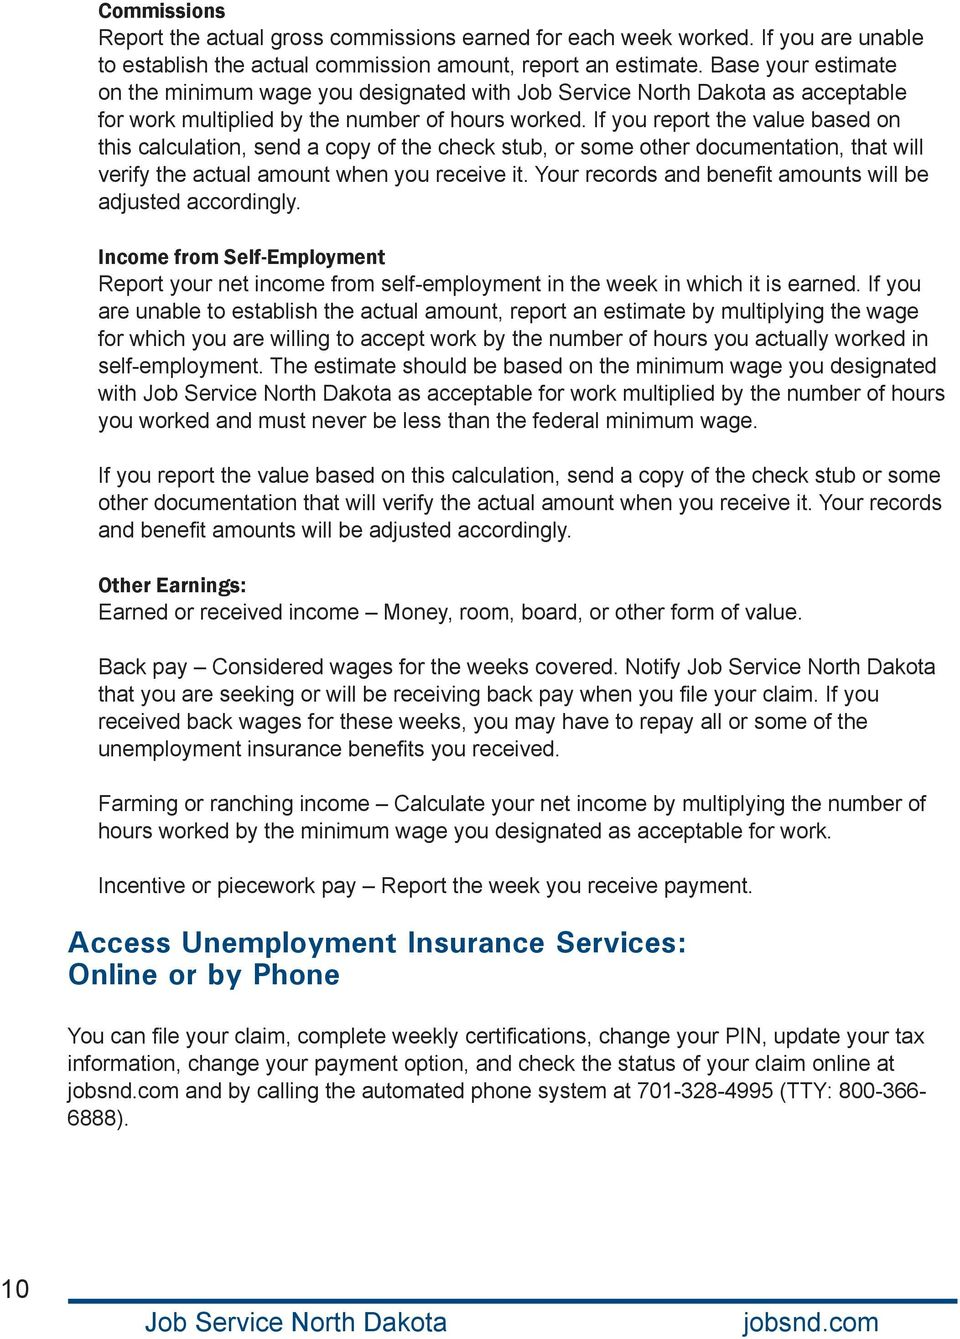 Unemployment Insurance Claimant Guide Pdf